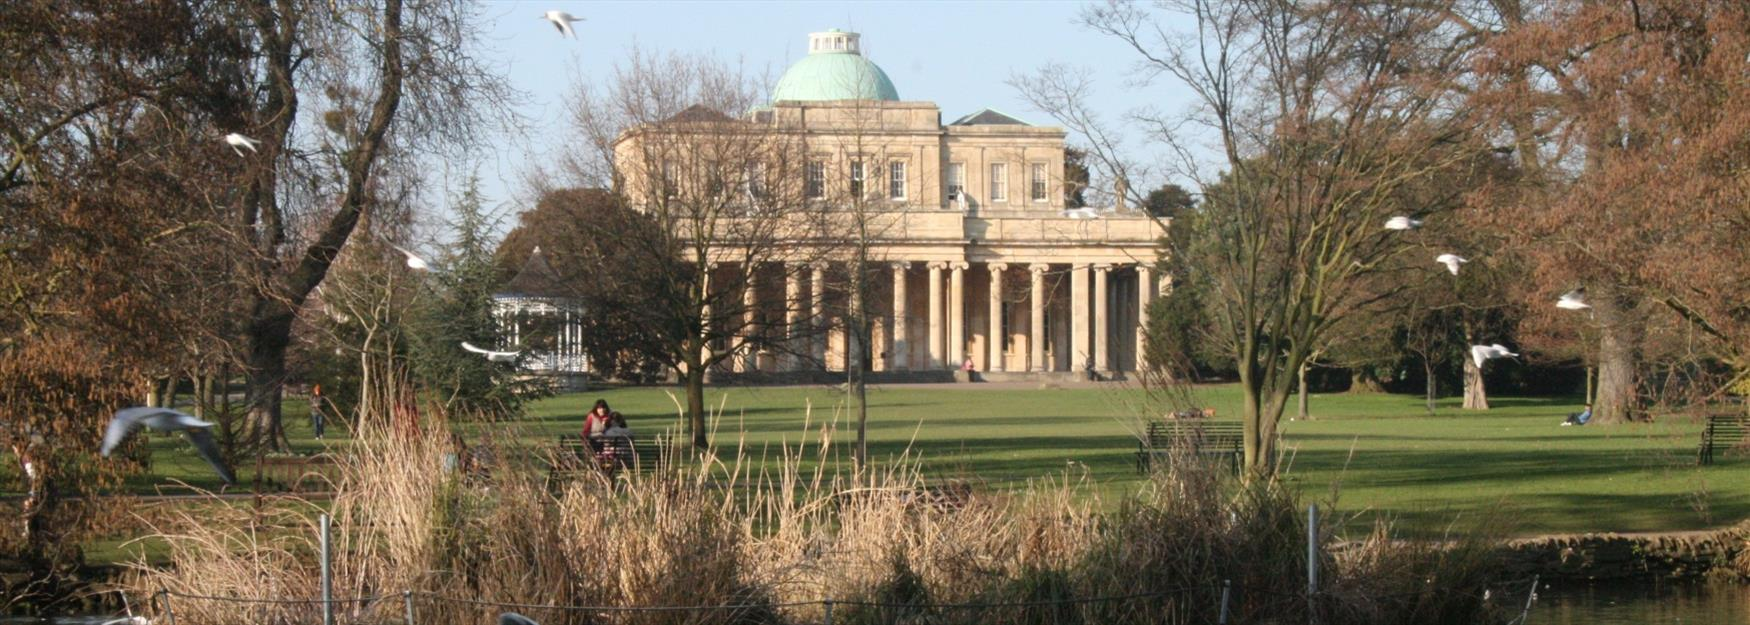 Looking towards Pittville Pump Room through Pittville Park